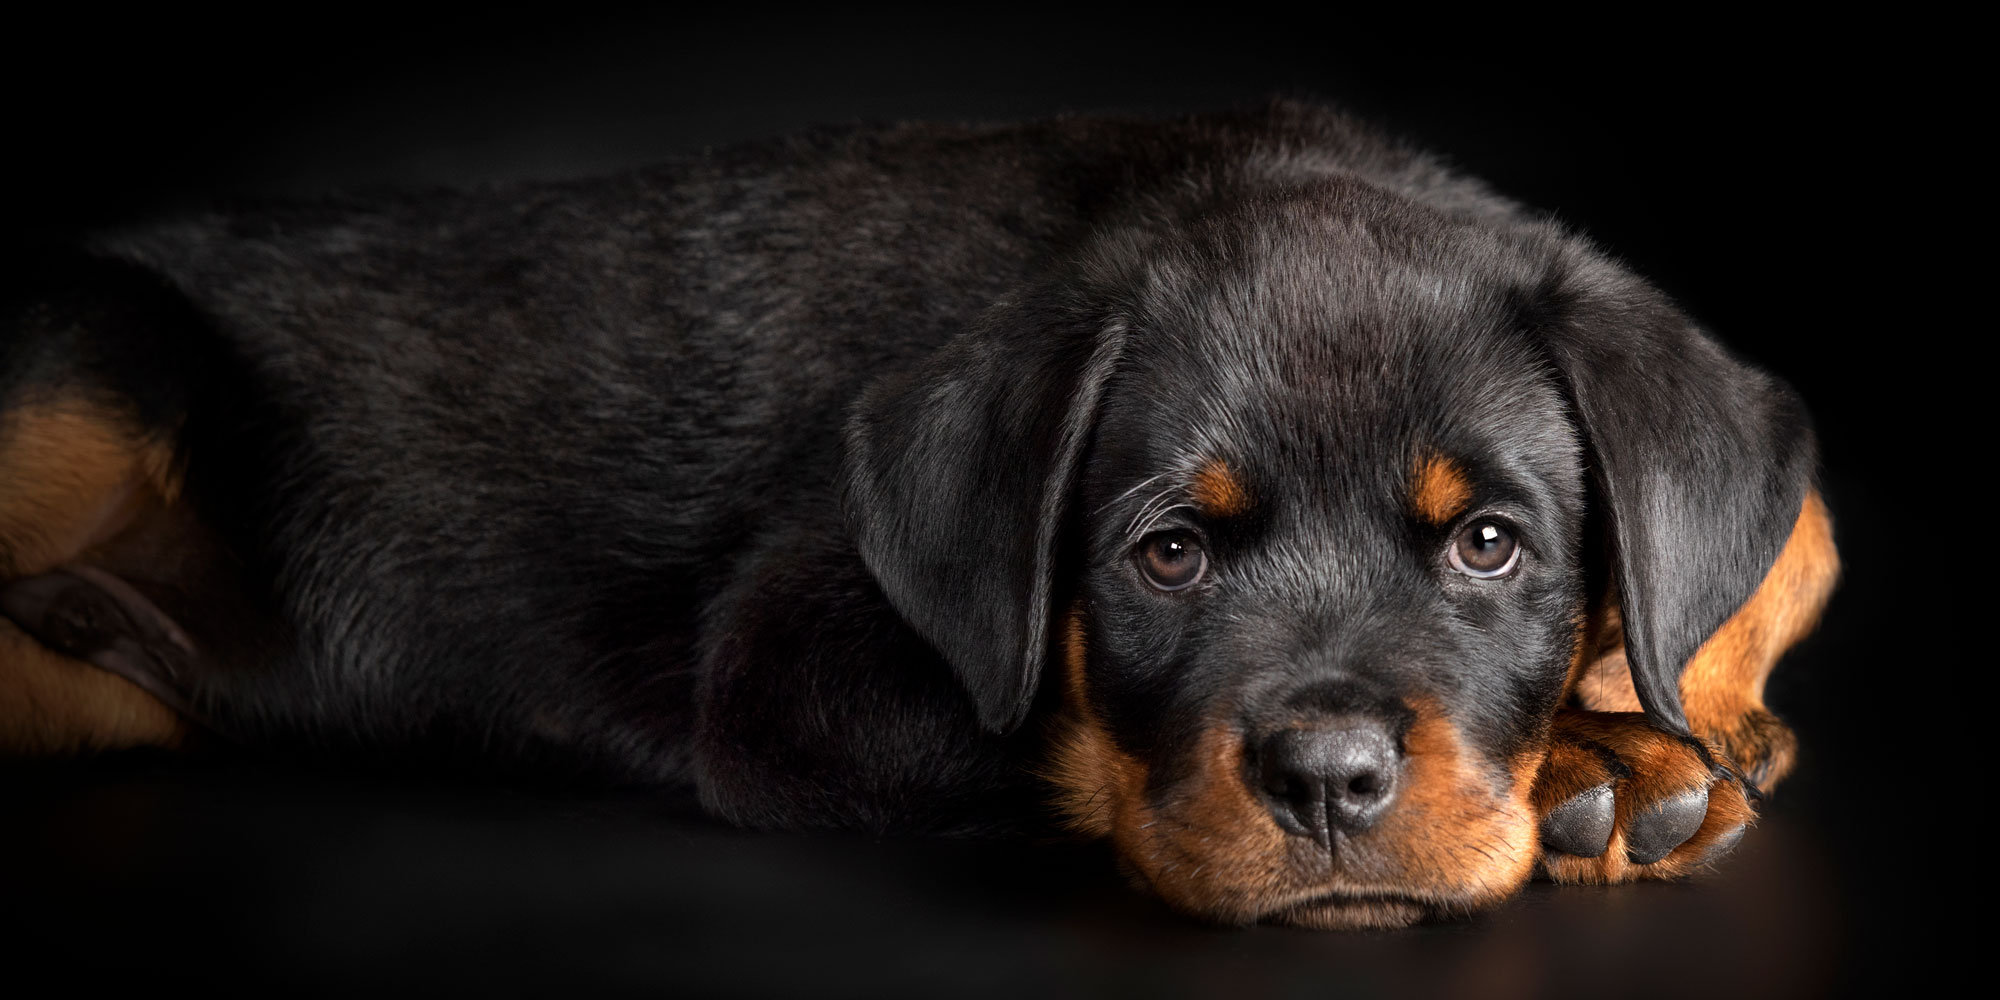 sweet faced make rottweiler puppy resting head